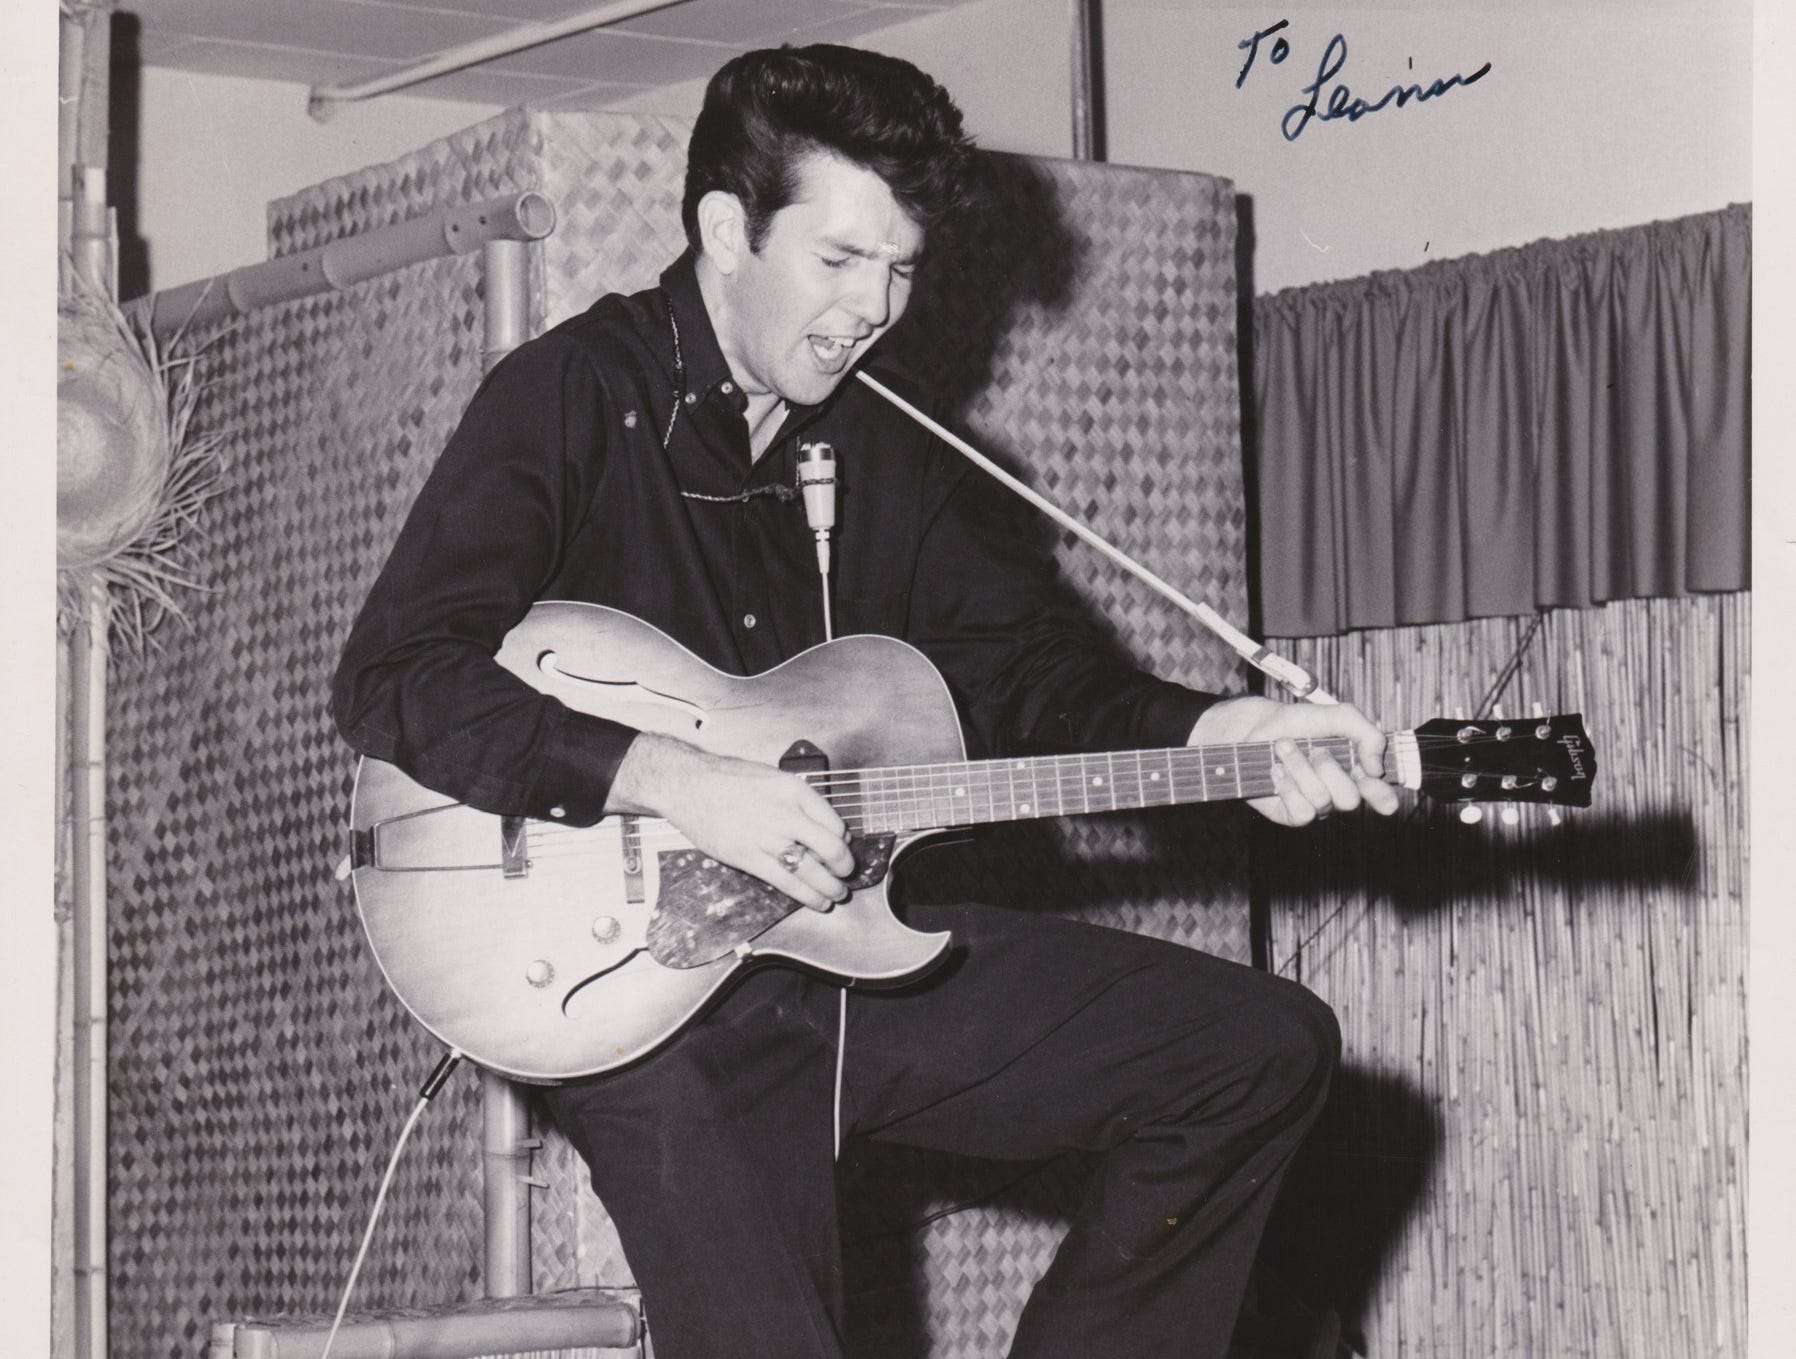 """Musician Tony Joe White provided this photo of himself performing at a club in Kingsville. While memories are fuzzy, White believes this photo was taken at the Beachcomber's Club. Note the photo's inscription, """"To Leann. I'll love you forever. Tony."""" Leann is White's wife."""